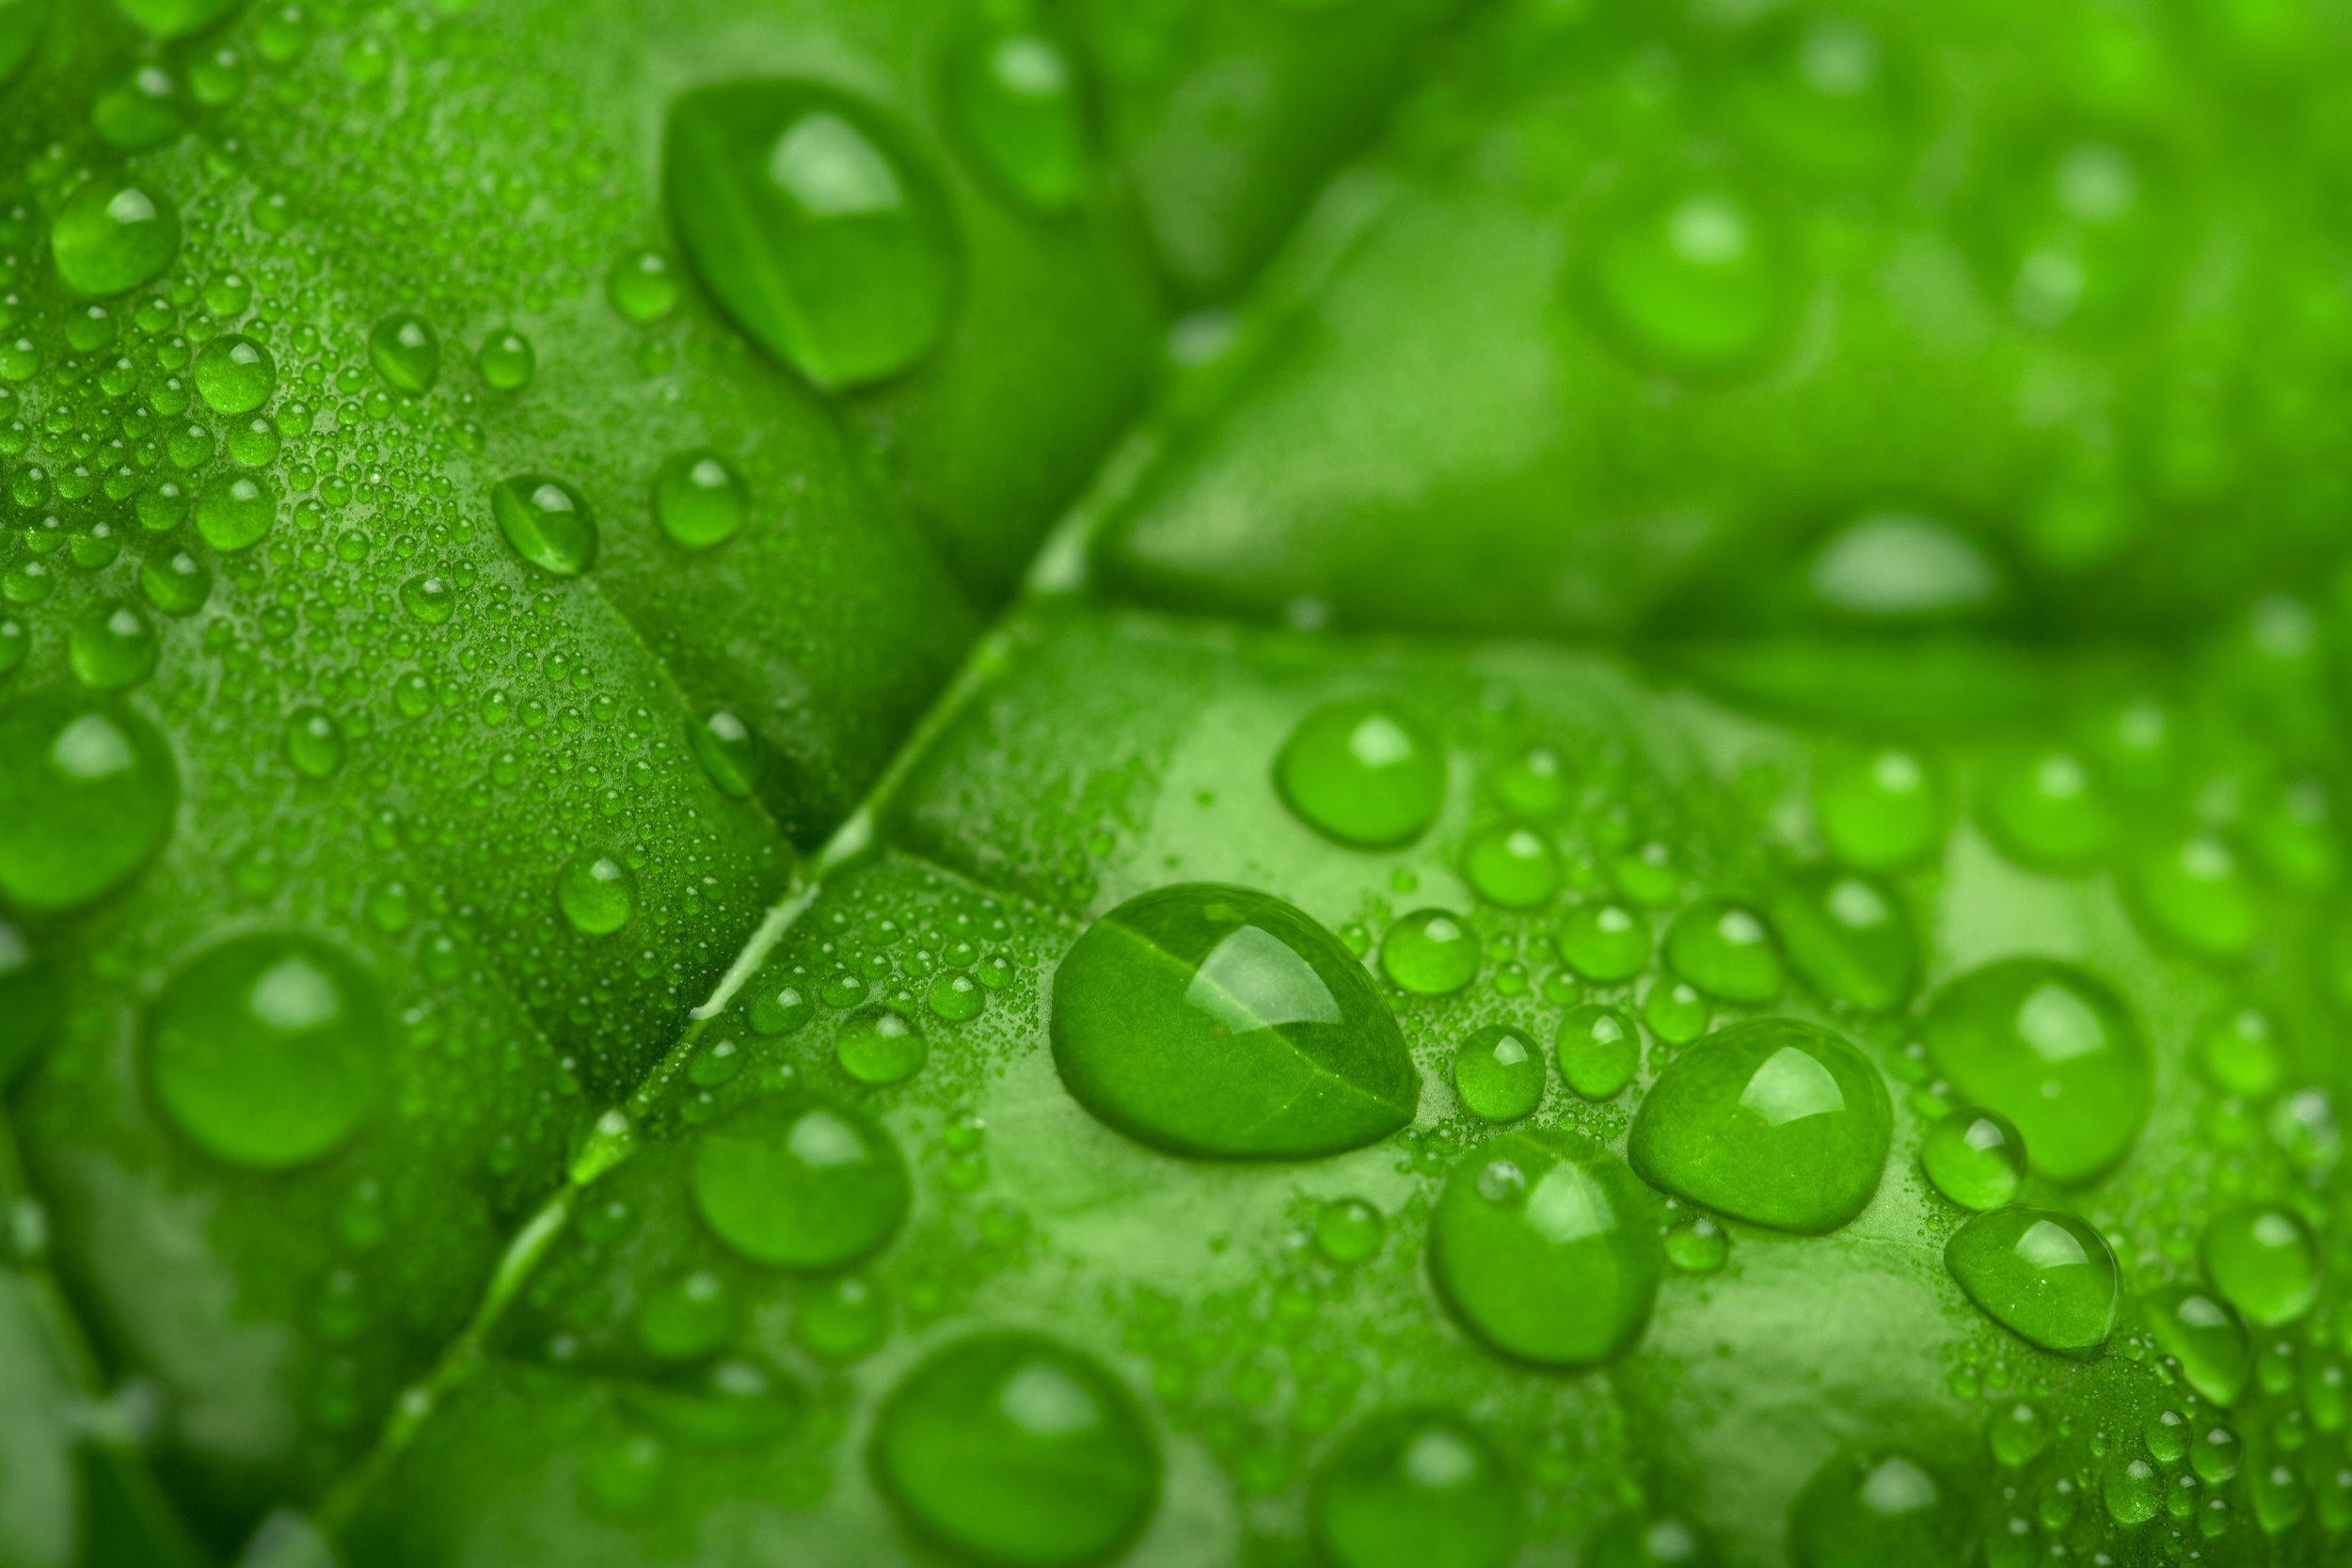 fresh-green-leaf-with-water-droplets-P6JVQCR.jpg